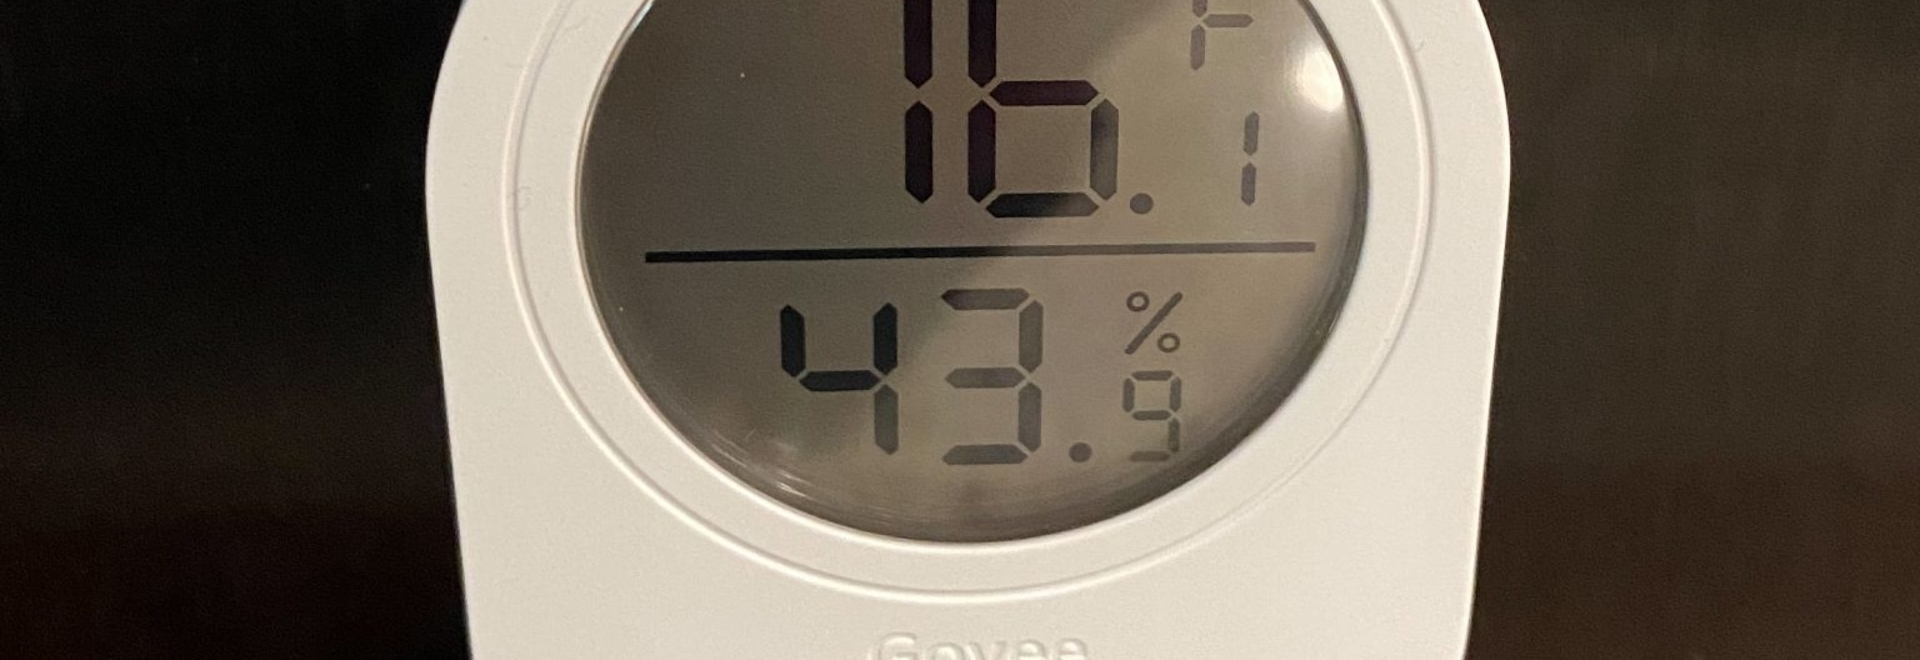 Govee WiFi thermometer and hydrometer, inexpensive and easy off boat monitoring